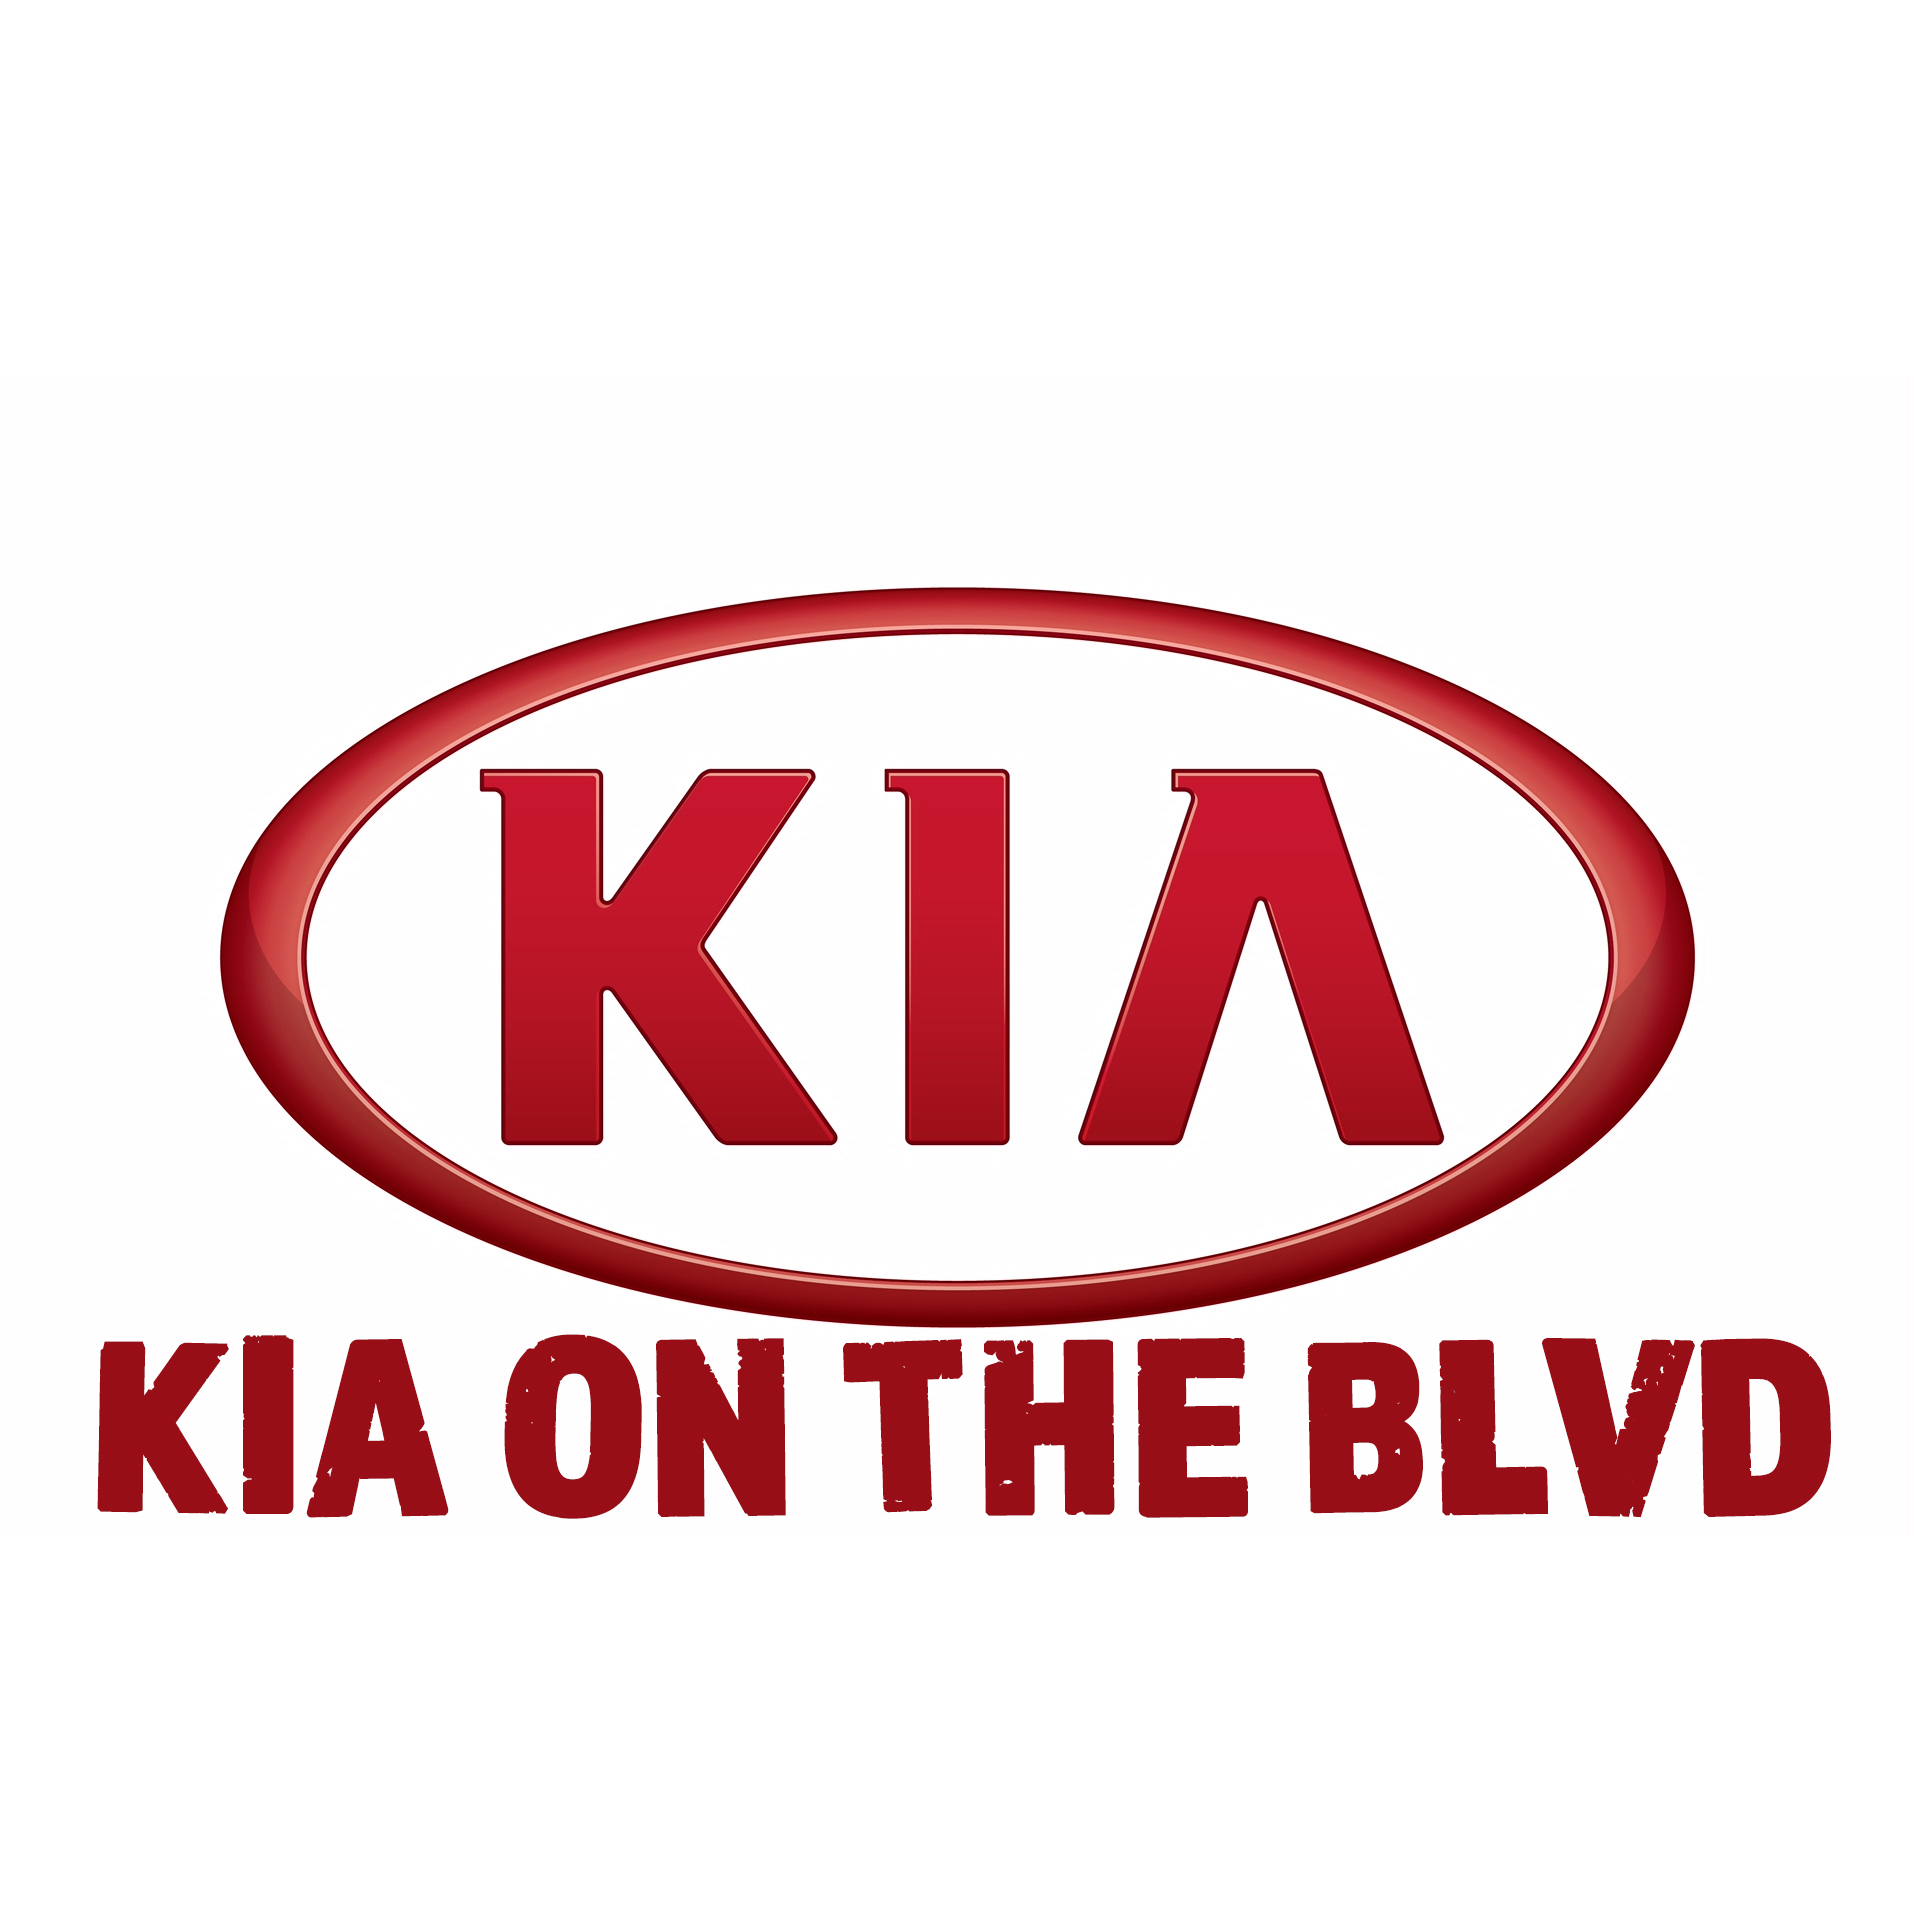 Kia on the Boulevard